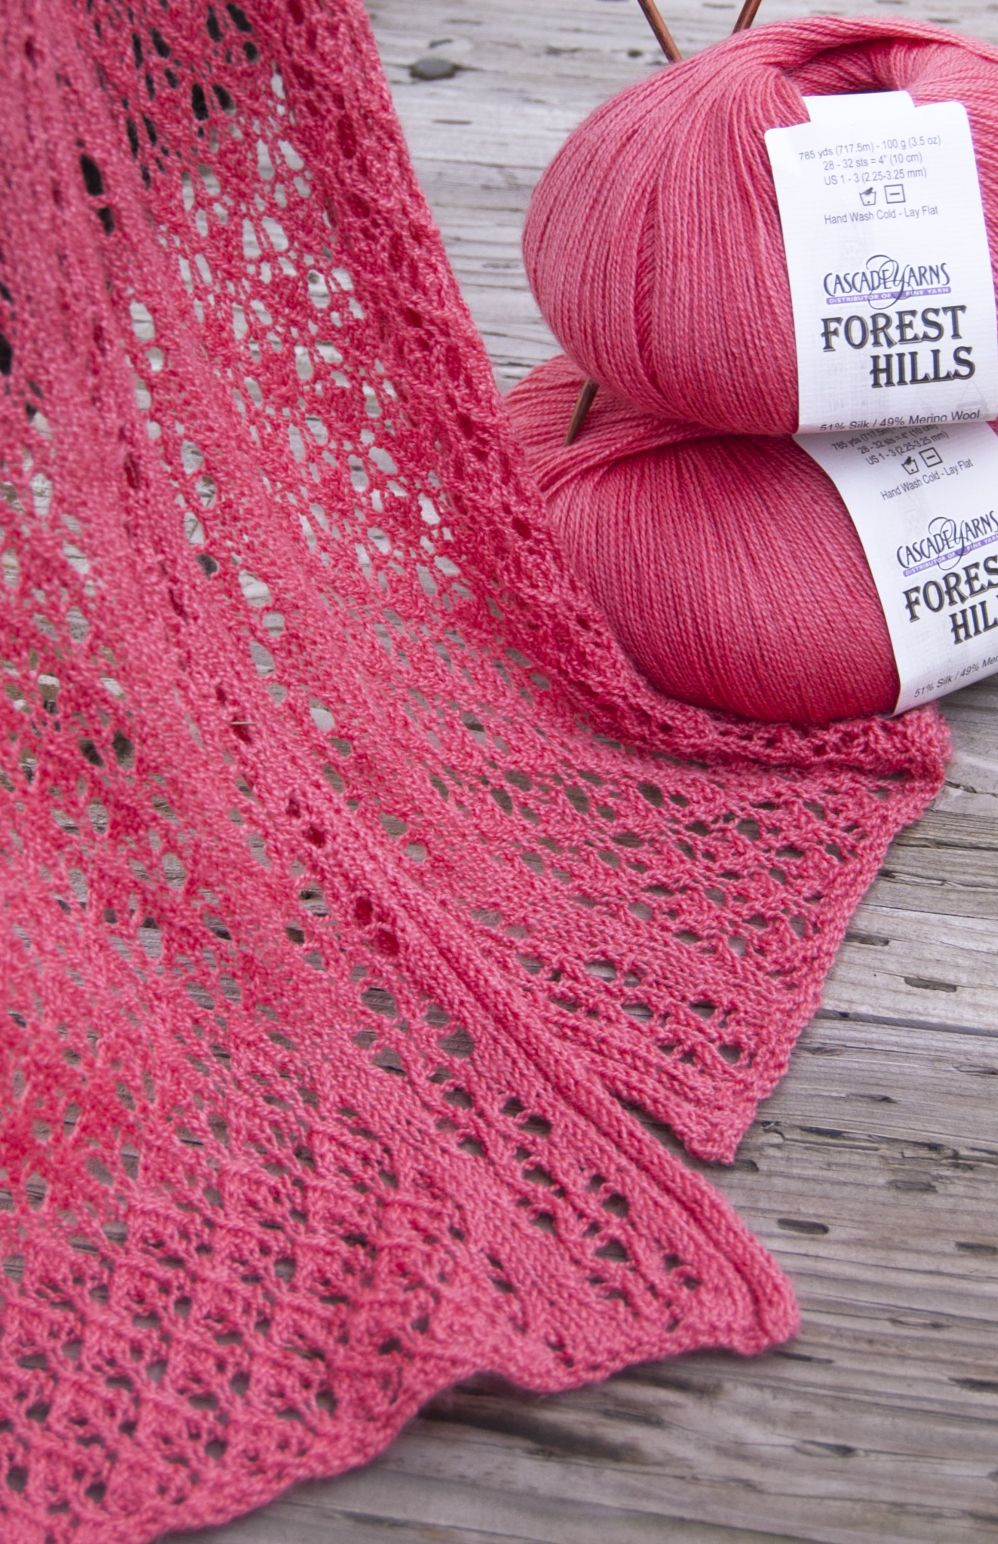 Free pattern highlight — Cascade Yarns Forest Hills Lace ...